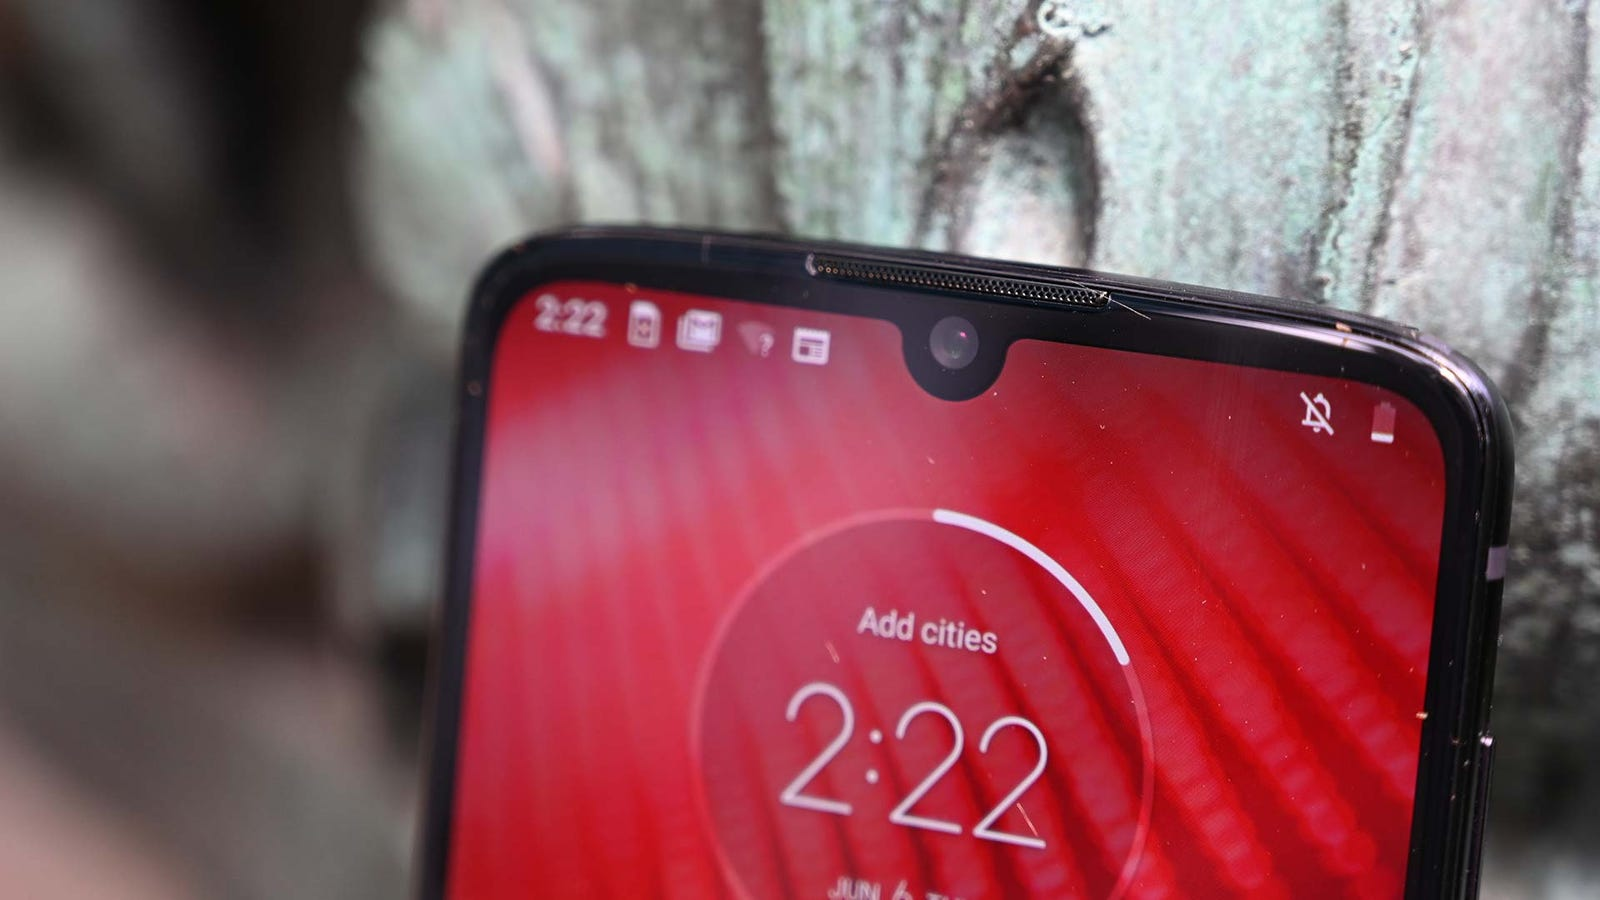 Illustration for article titled The Moto Z4 Is a Solid Mid-Range Contender, But It Might Be Time for a Reboot